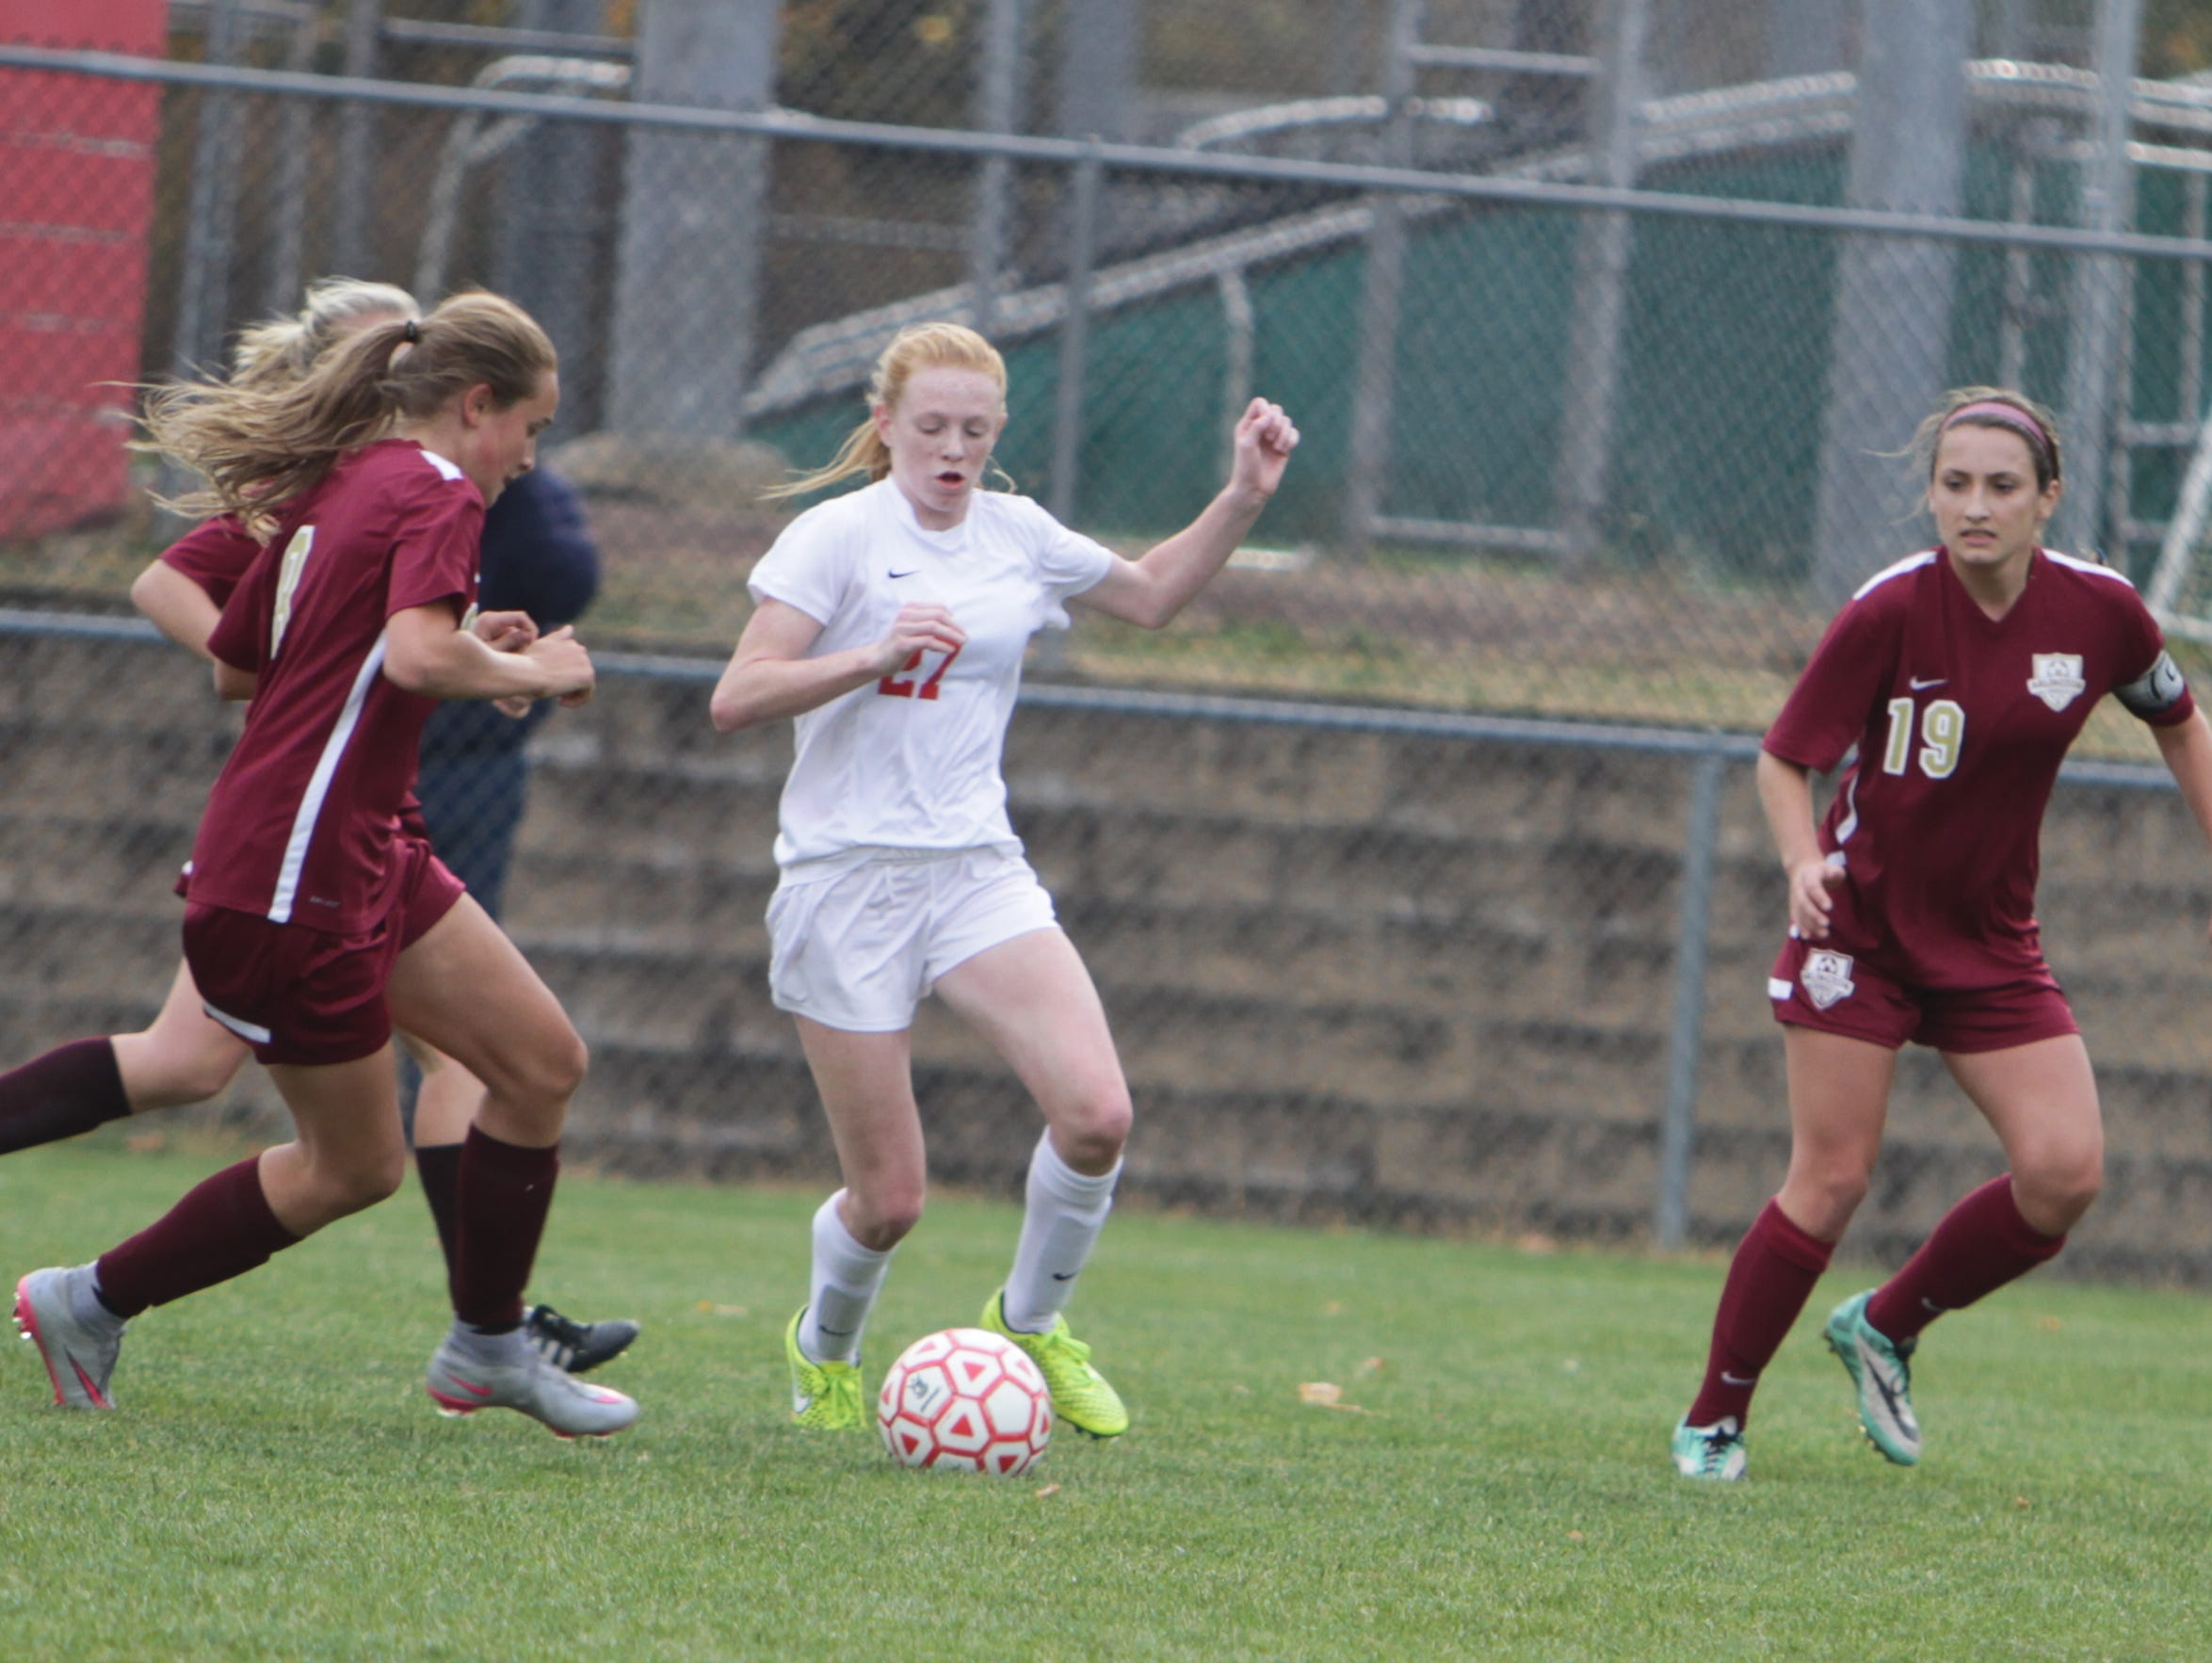 North Rockland's Kelly Brady attempts to dribble through the Arlington defense during a Section 1, Class AA quarterfinal game at North Rockland High School on Tuesday, October 27th, 2015. North Rockland won 2-0.